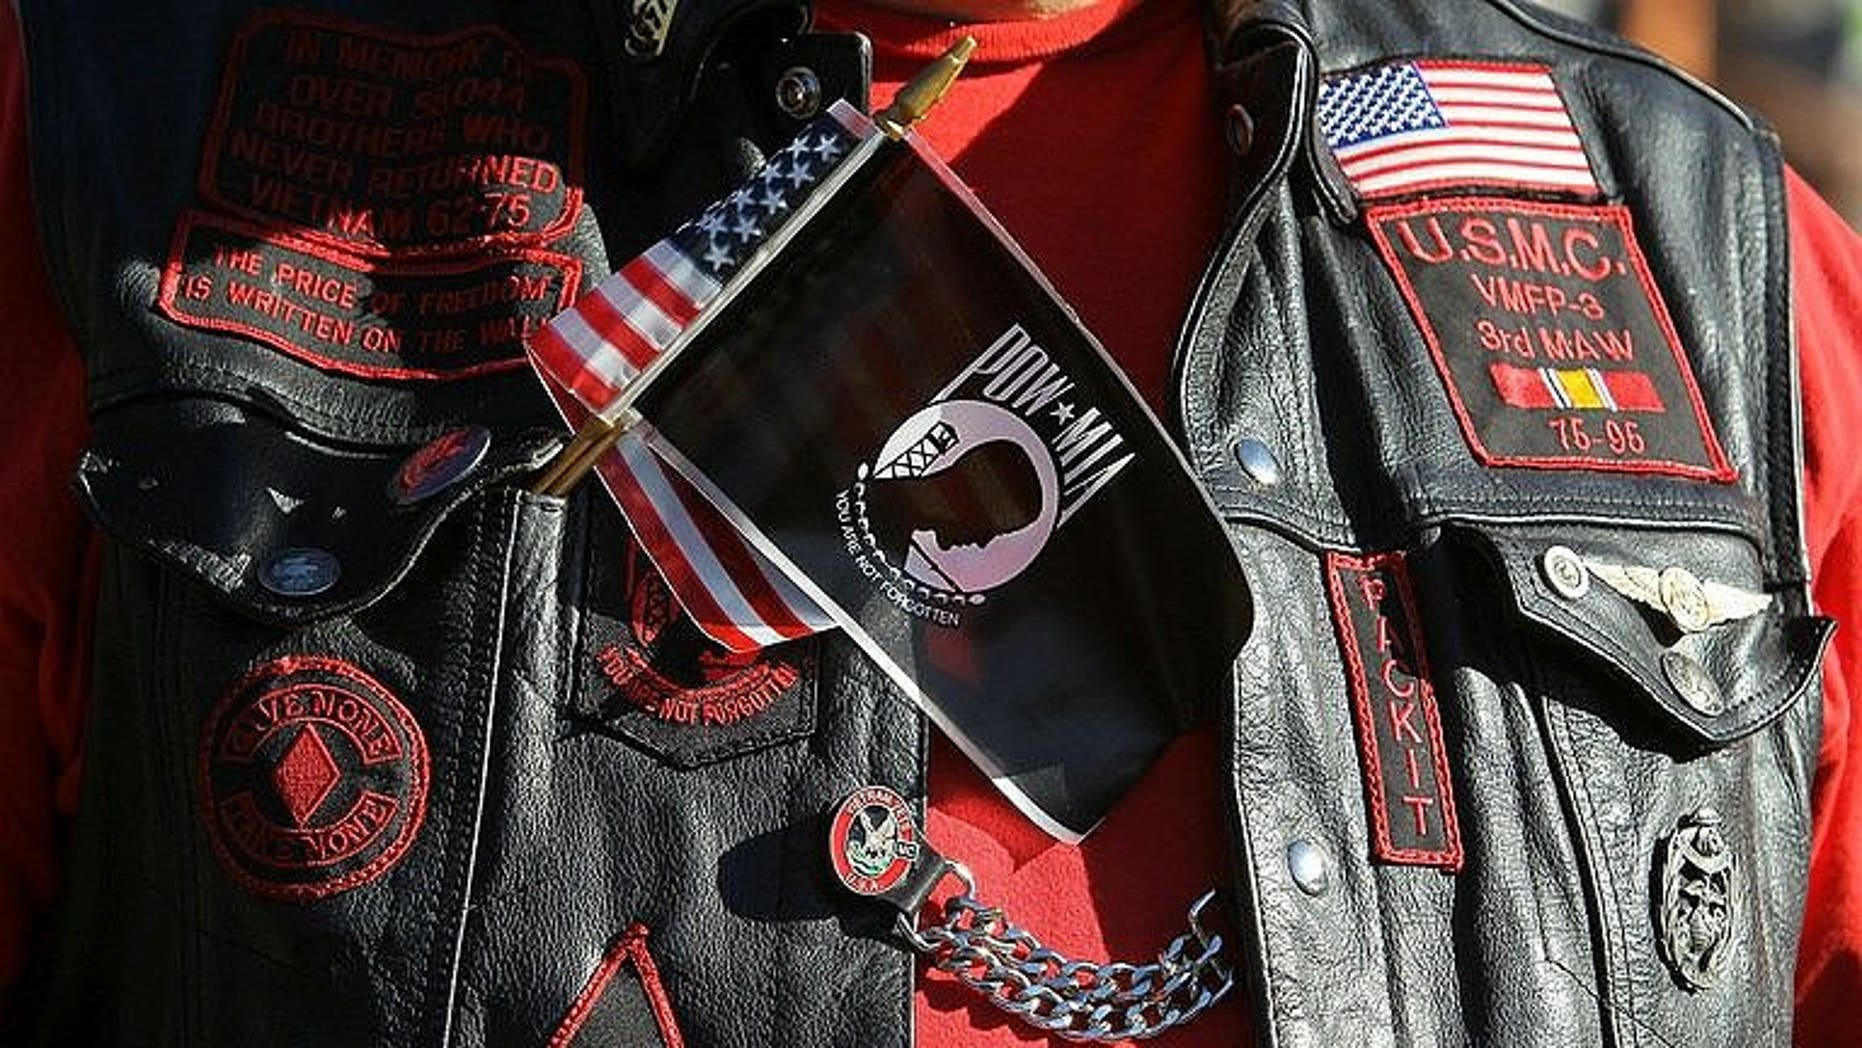 A veteran wears a US and POW-MIA flag together on his vest